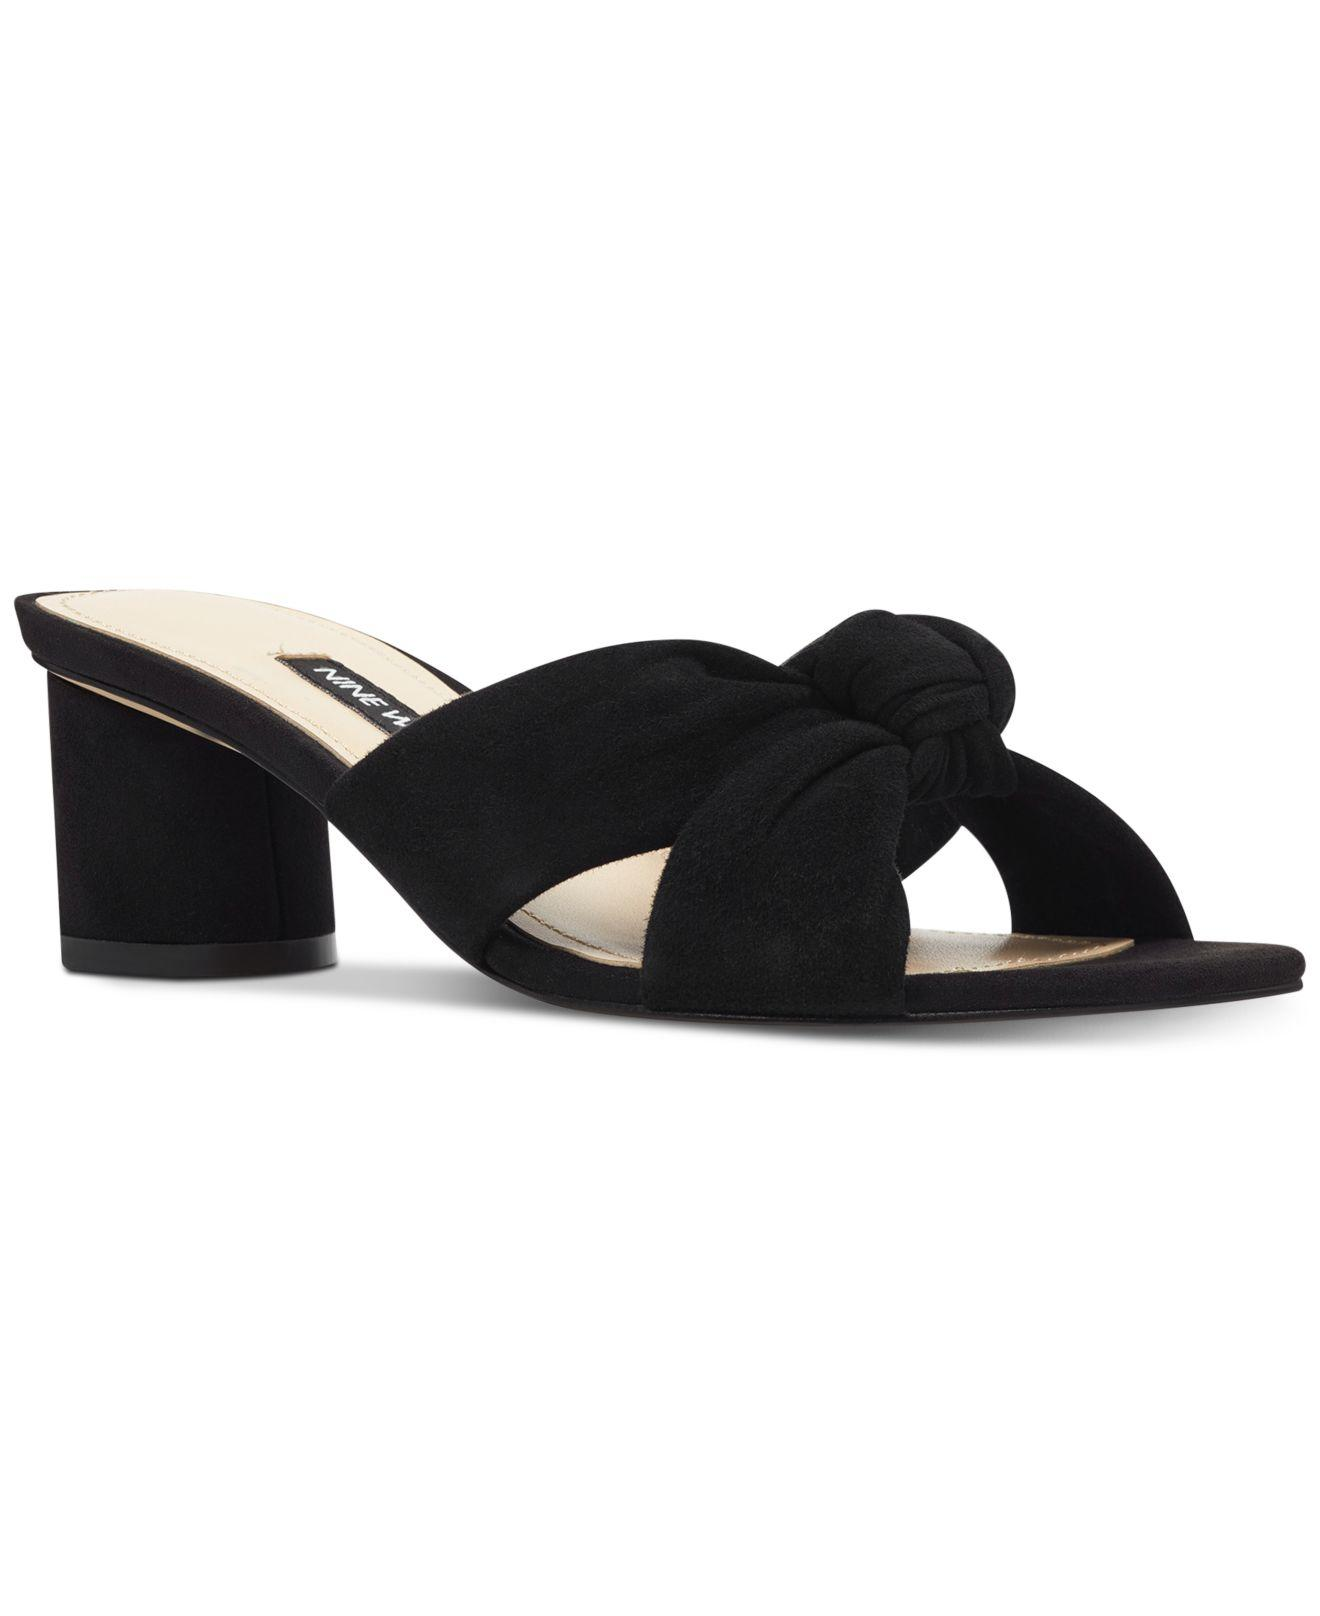 1b661f412 Lyst - Nine West Kayla Knotted Dress Sandals in Black